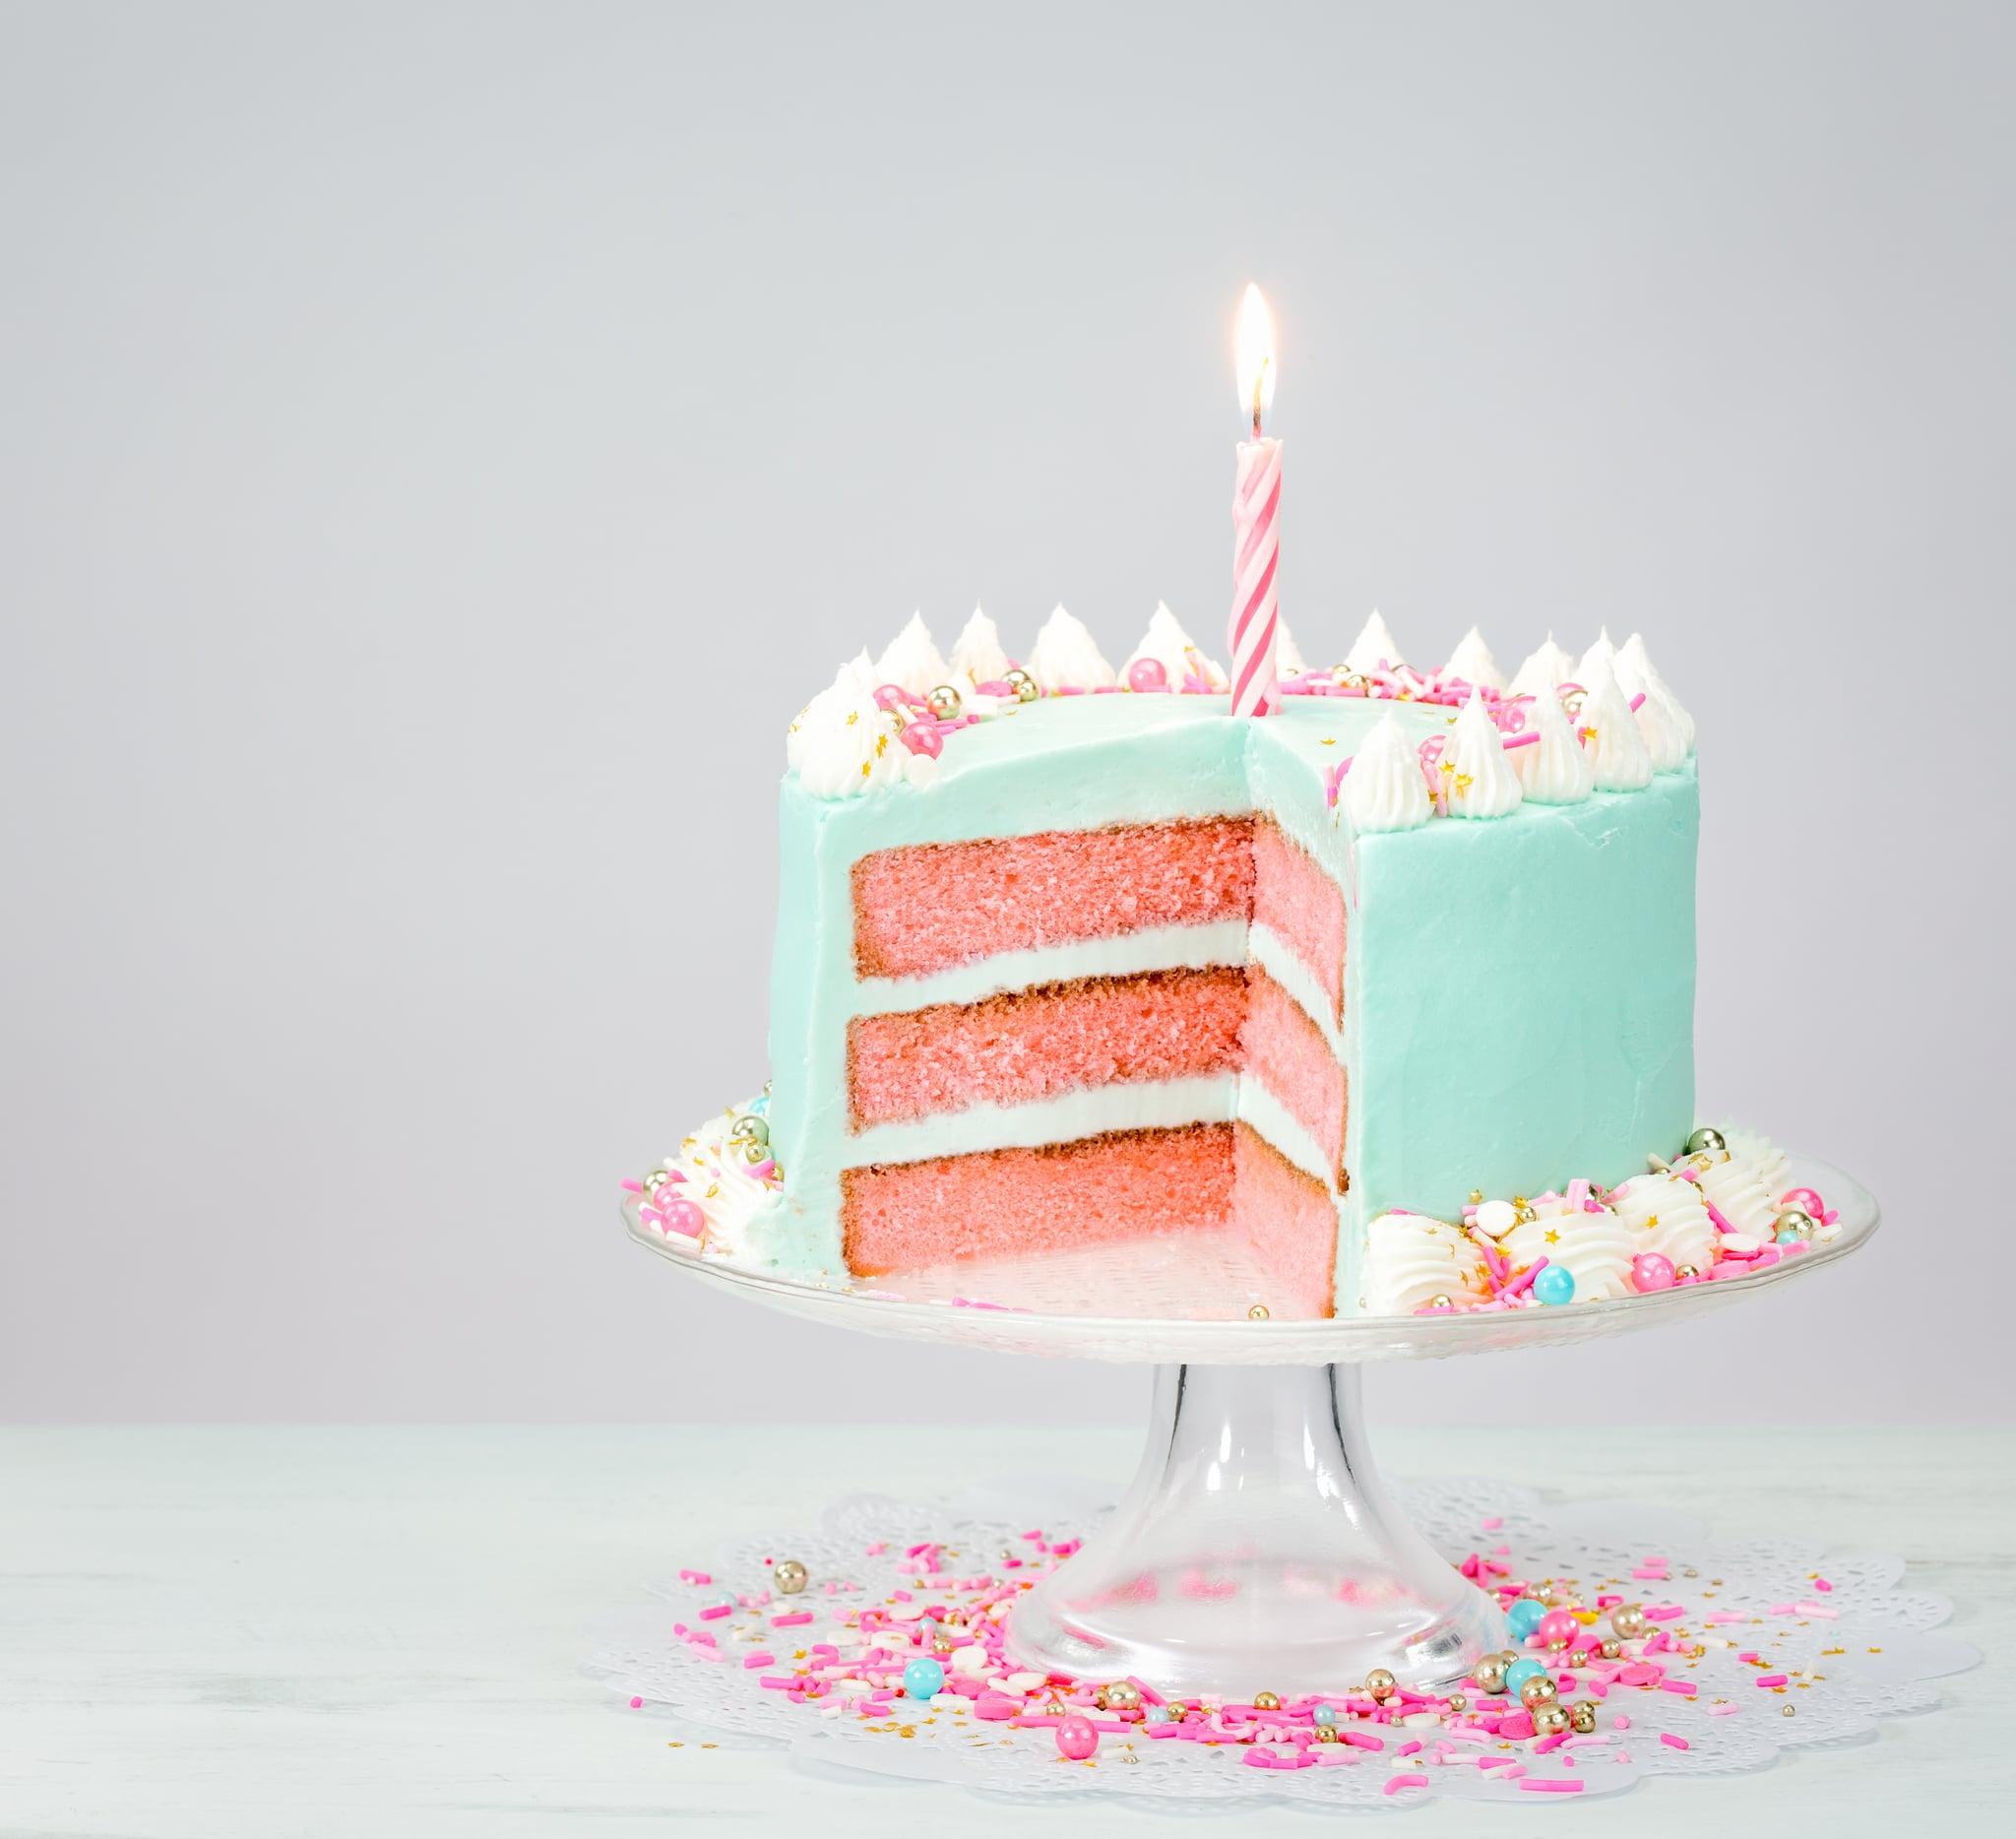 Pastel blue birthday cake over white background with pink layers and sprinkles.